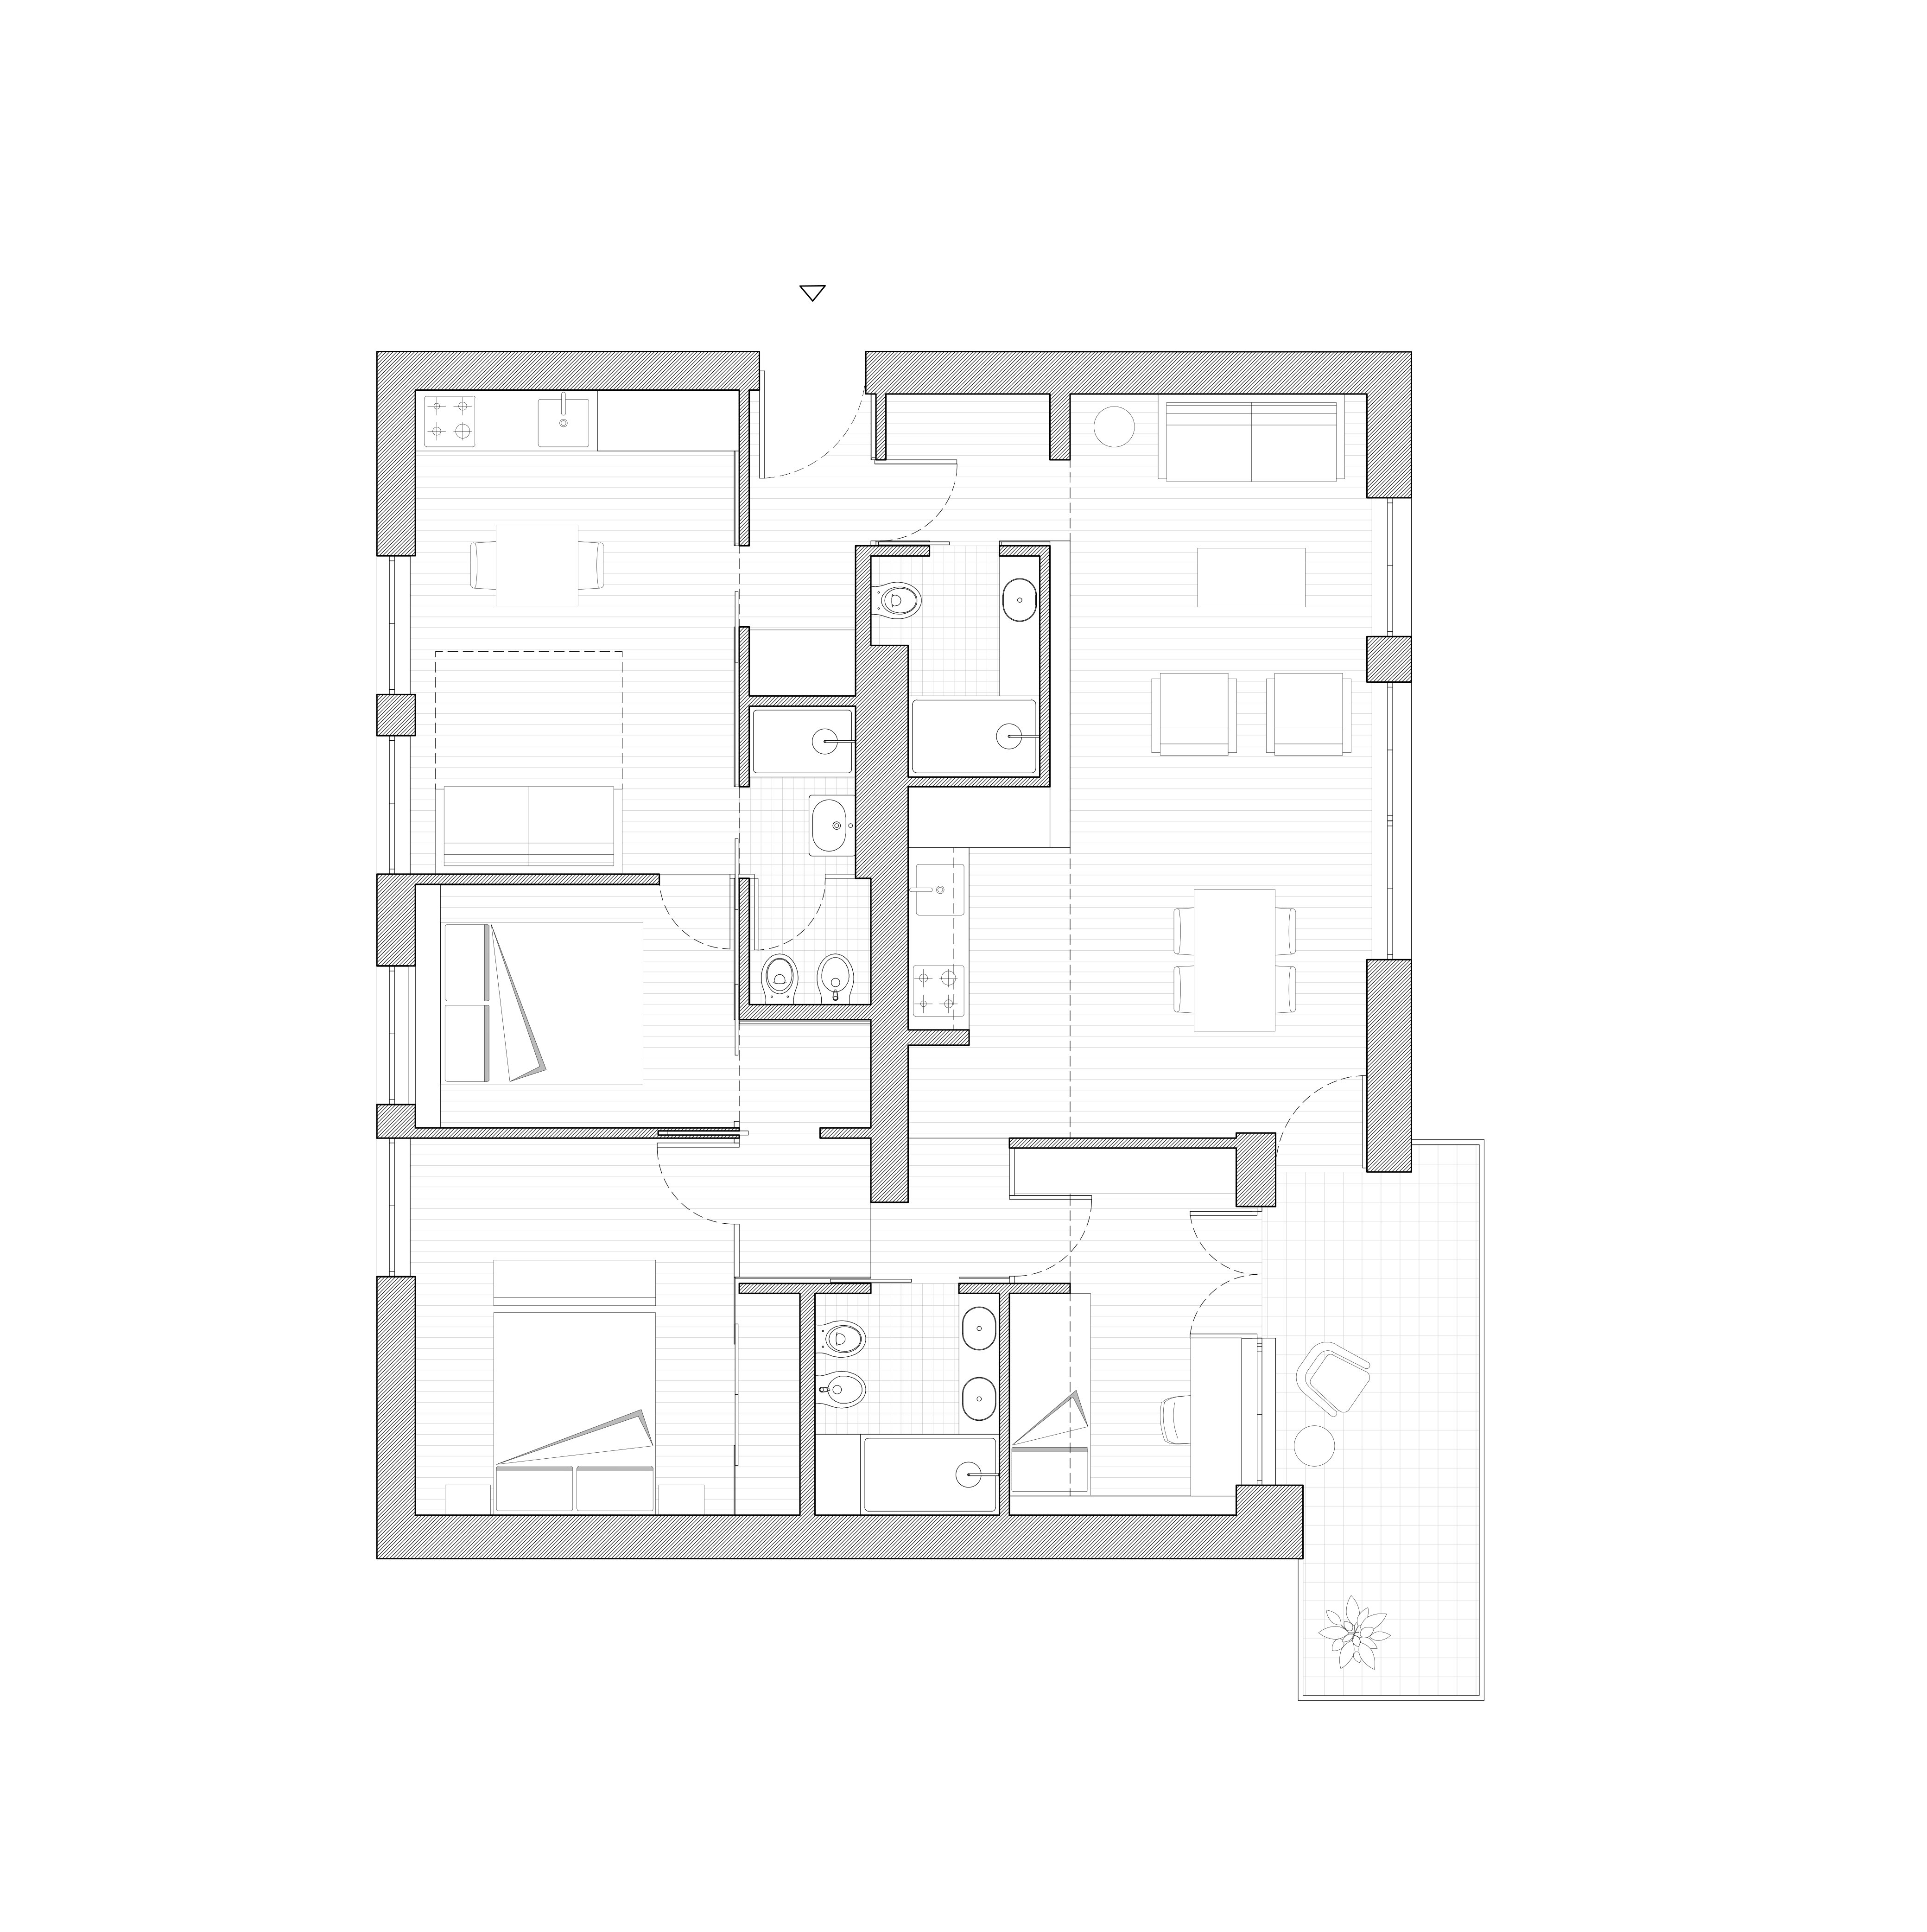 Canazei apartment redesigned plan